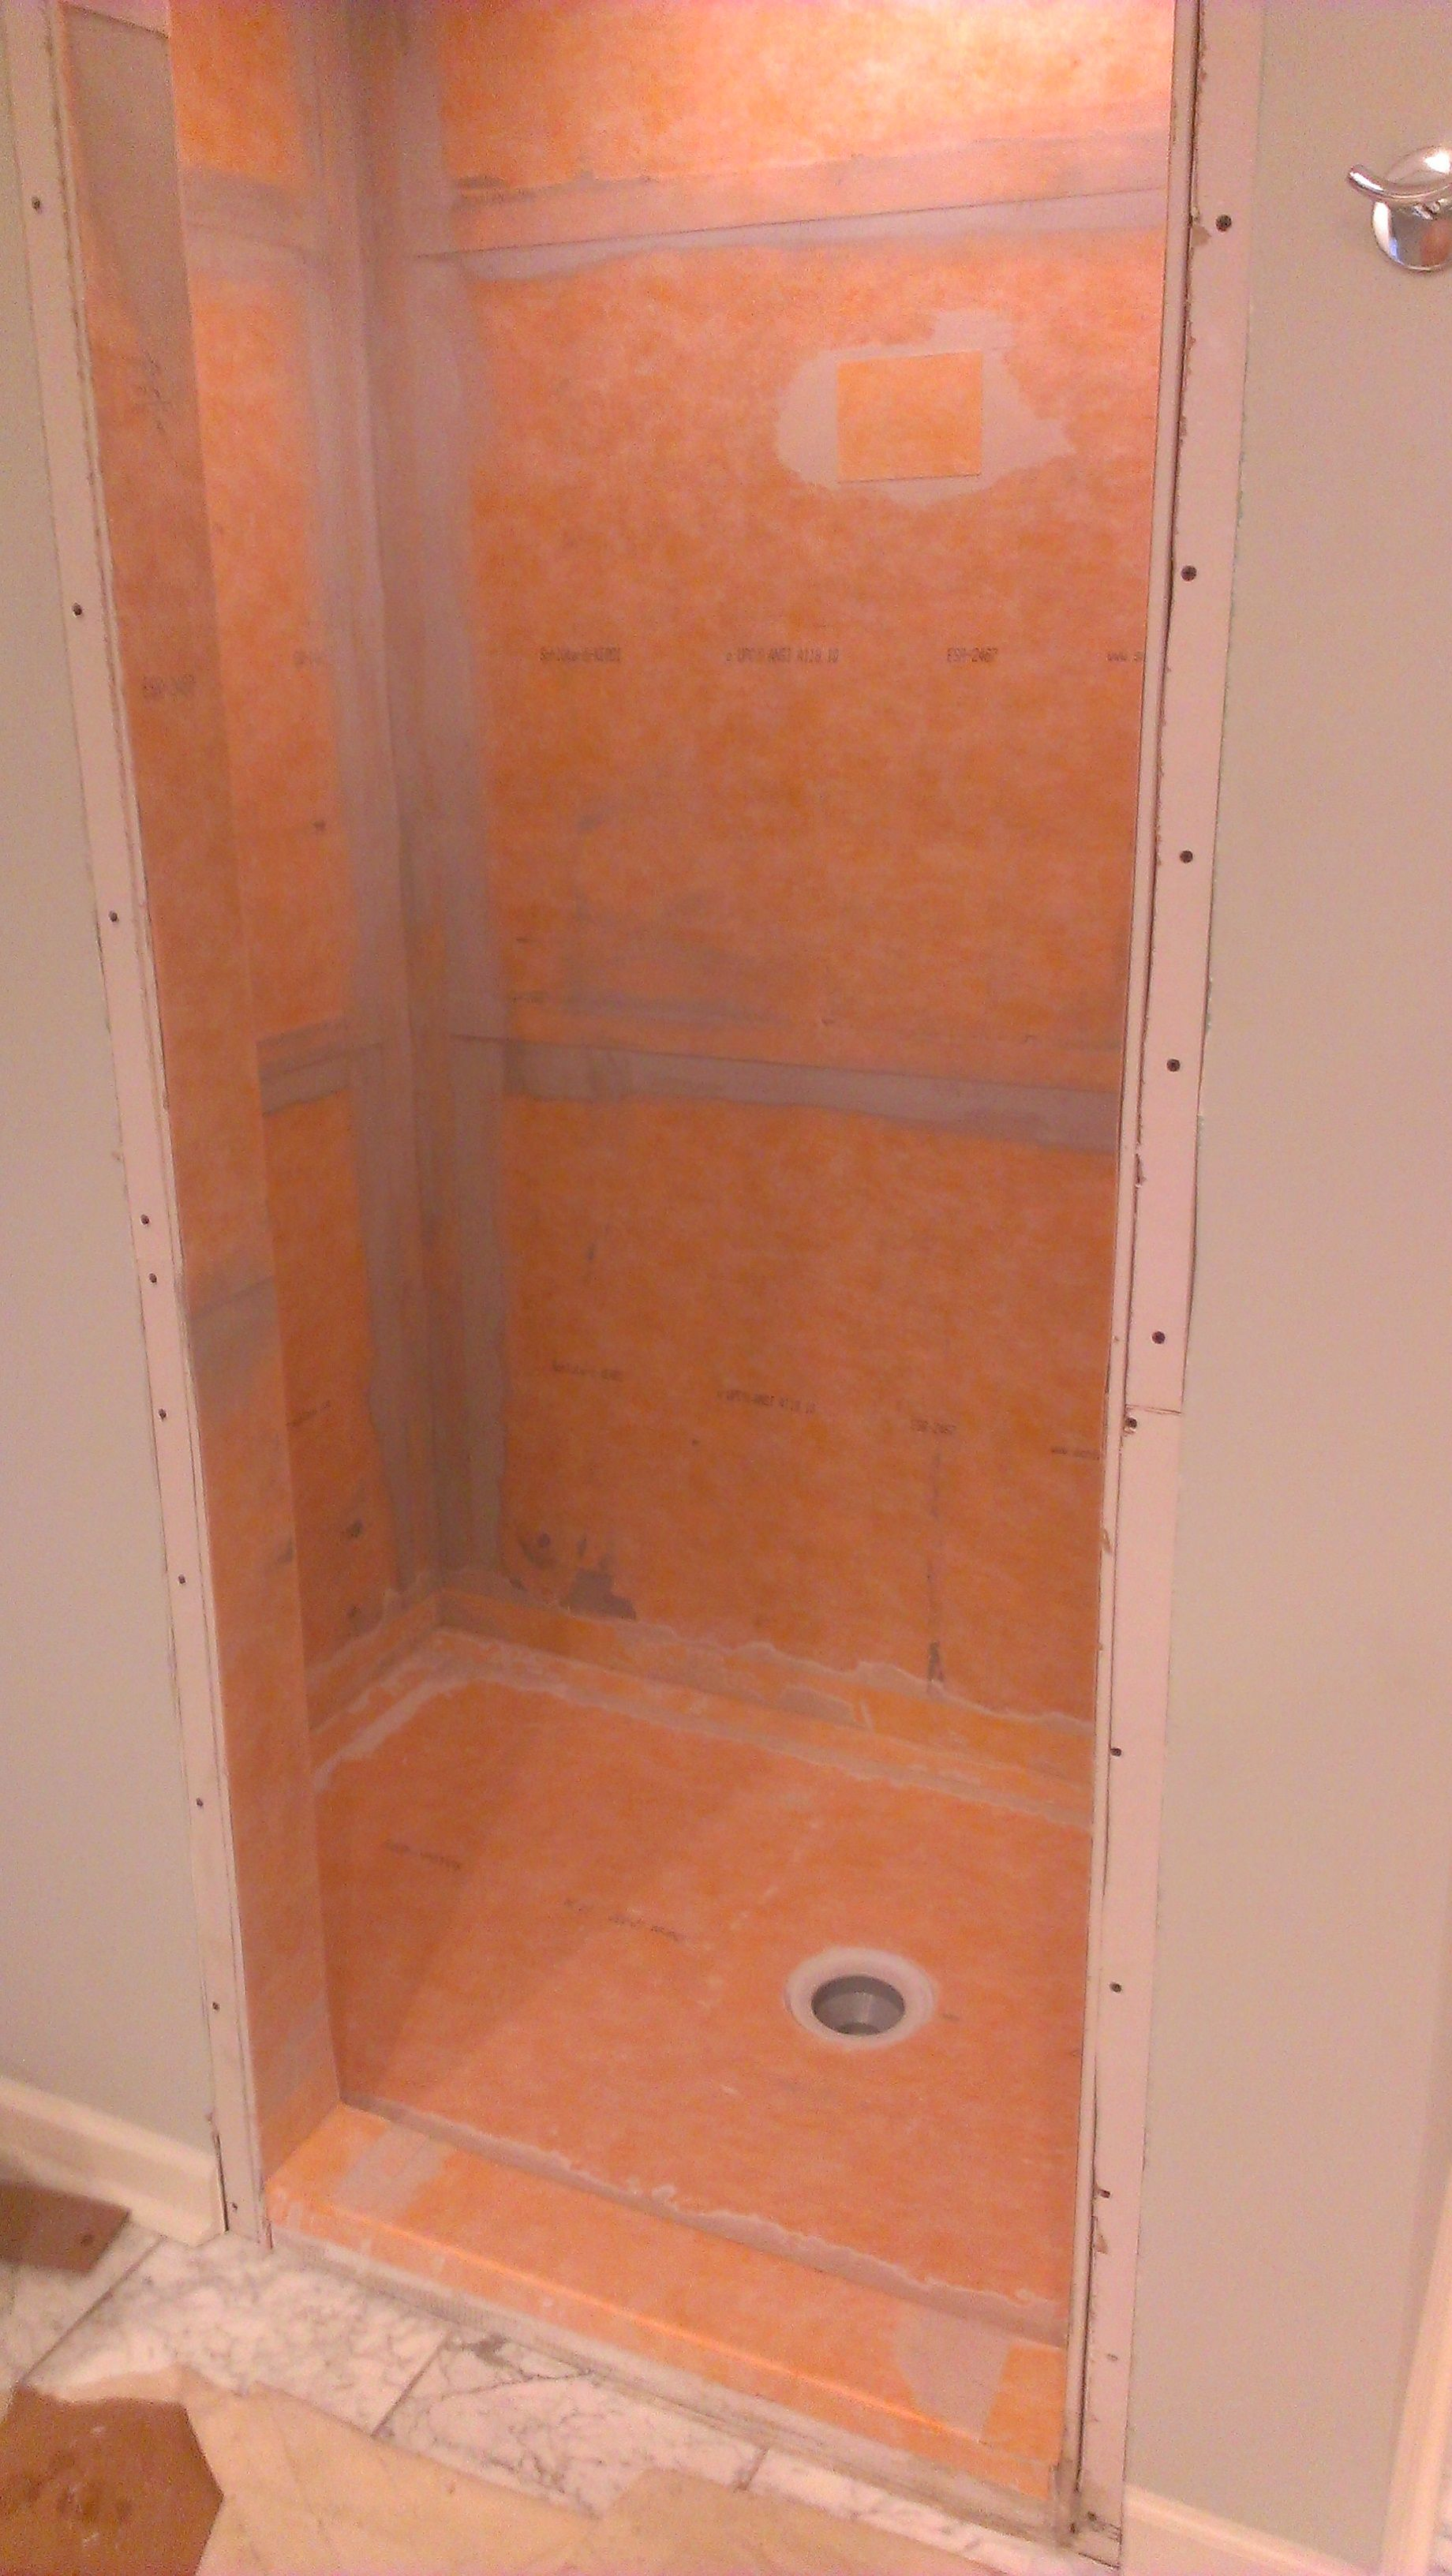 The Schluter Kerdi Waterproofing System For A Tile Shower